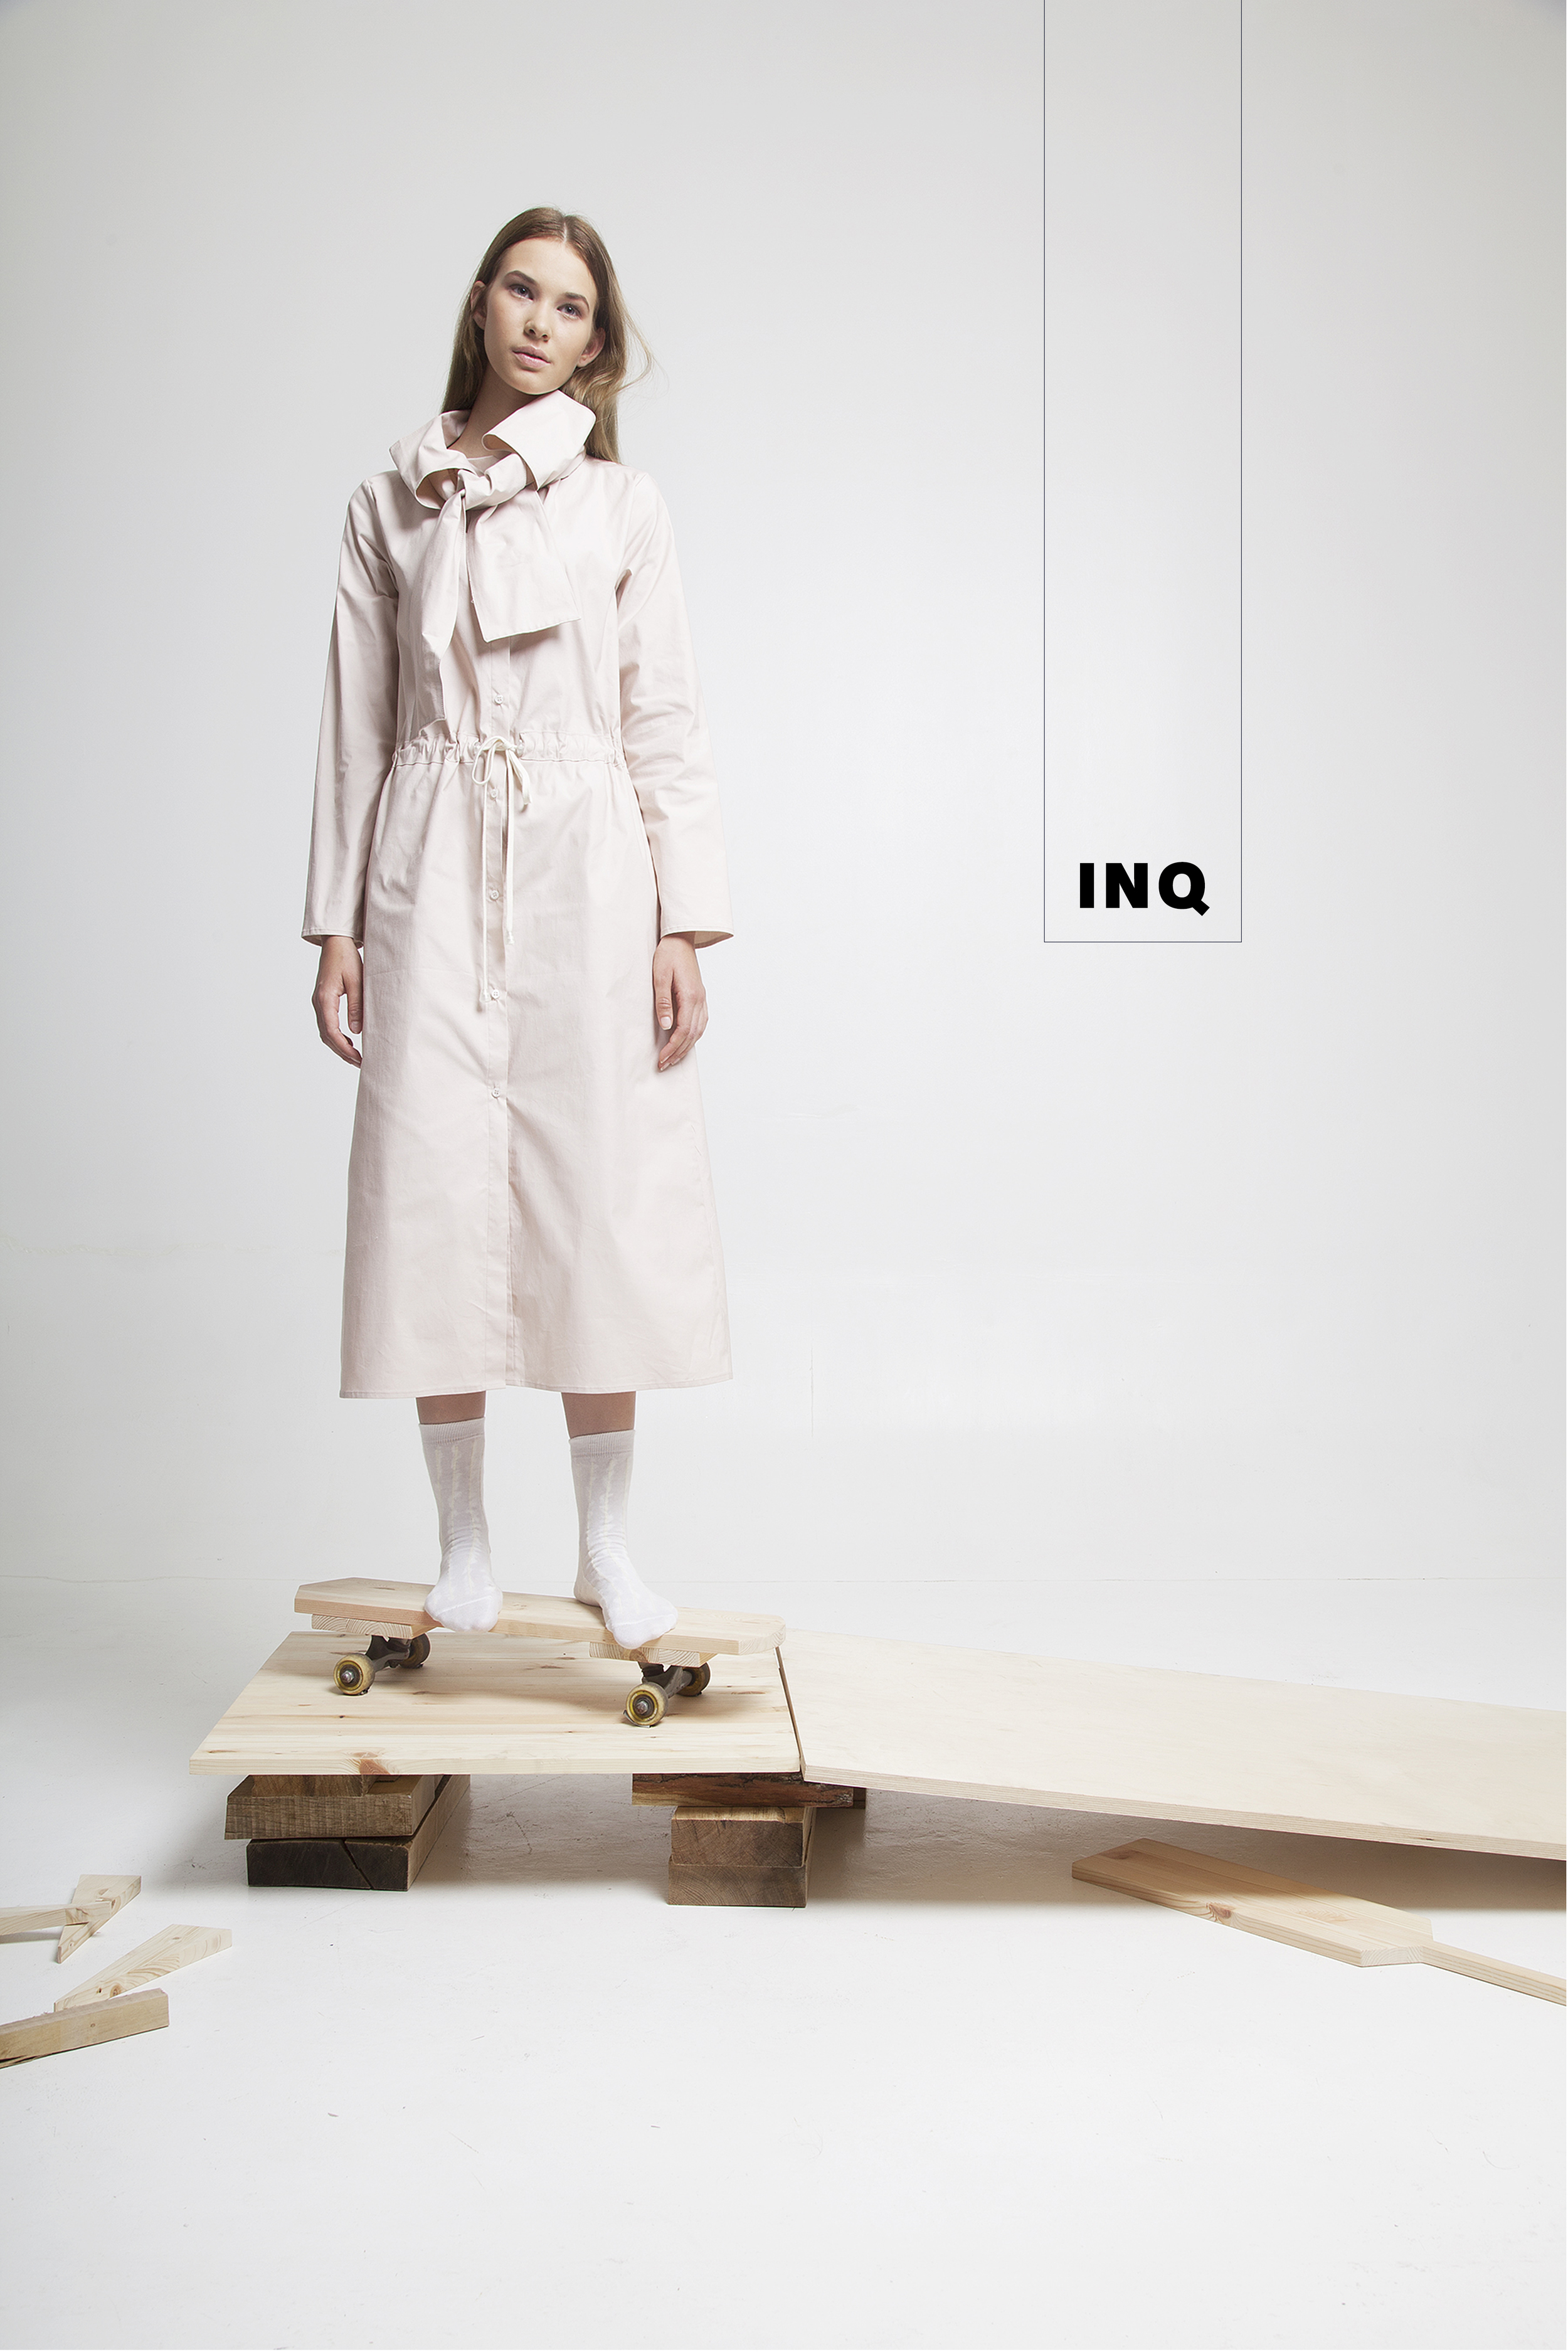 INQ concept_AW14_womenclothing_model Laura_photo by Mate Moro_hair and makeup by HAVE Salon_6.jpg